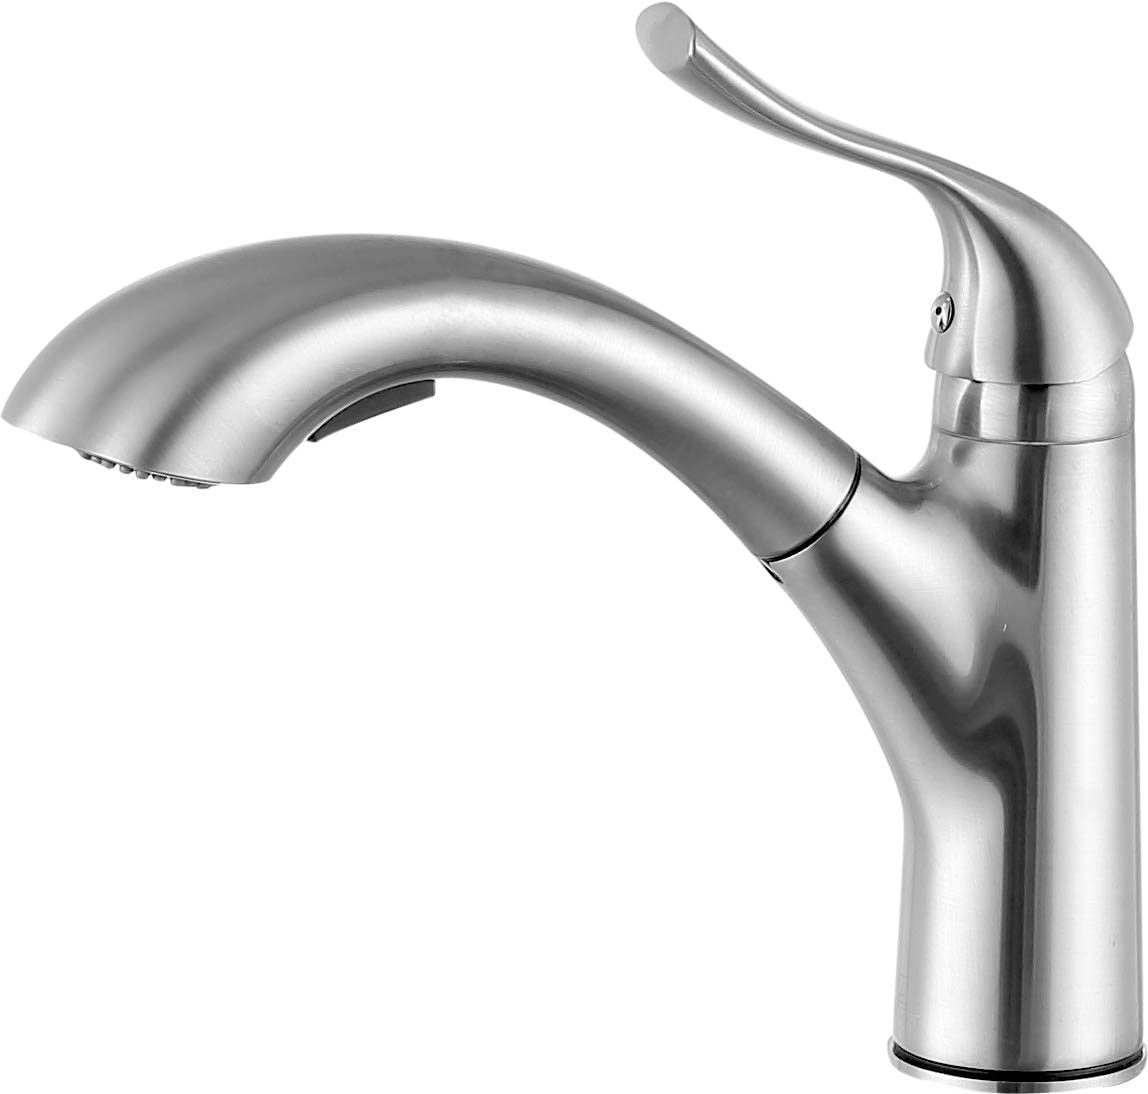 ANZZI Di Piazza Single Handle Pull Out Dual Setting Kitchen Faucet in Brushed Nickel Commercial Stainless Steel Sink Deck Mounted Spout Sprayer Faucets cUPC Certified KF-AZ205BN